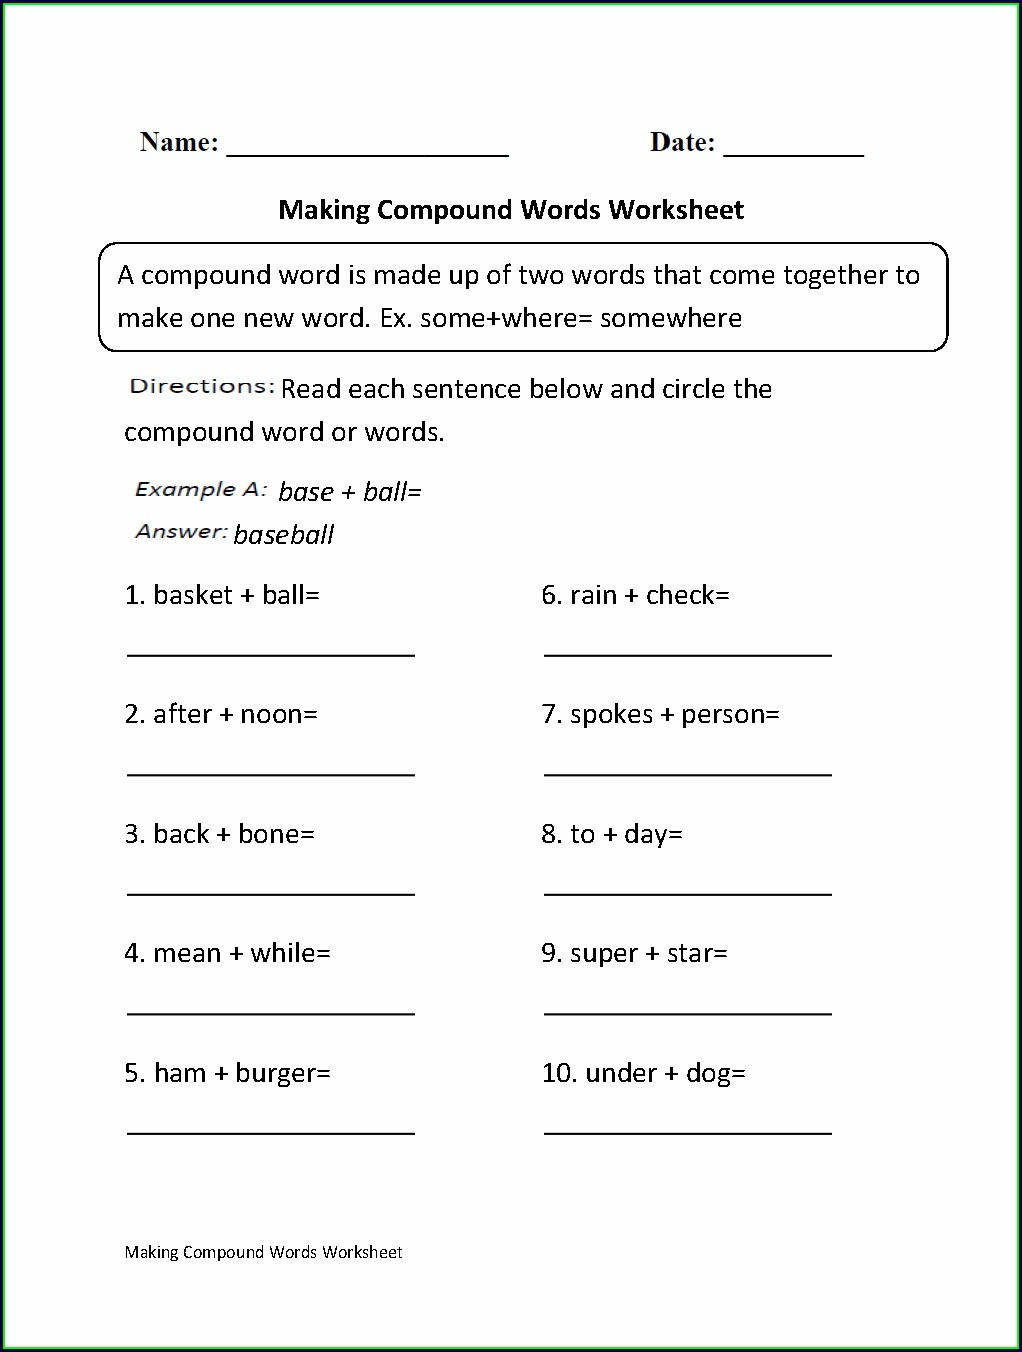 Worksheet On Compound Words For Class 3